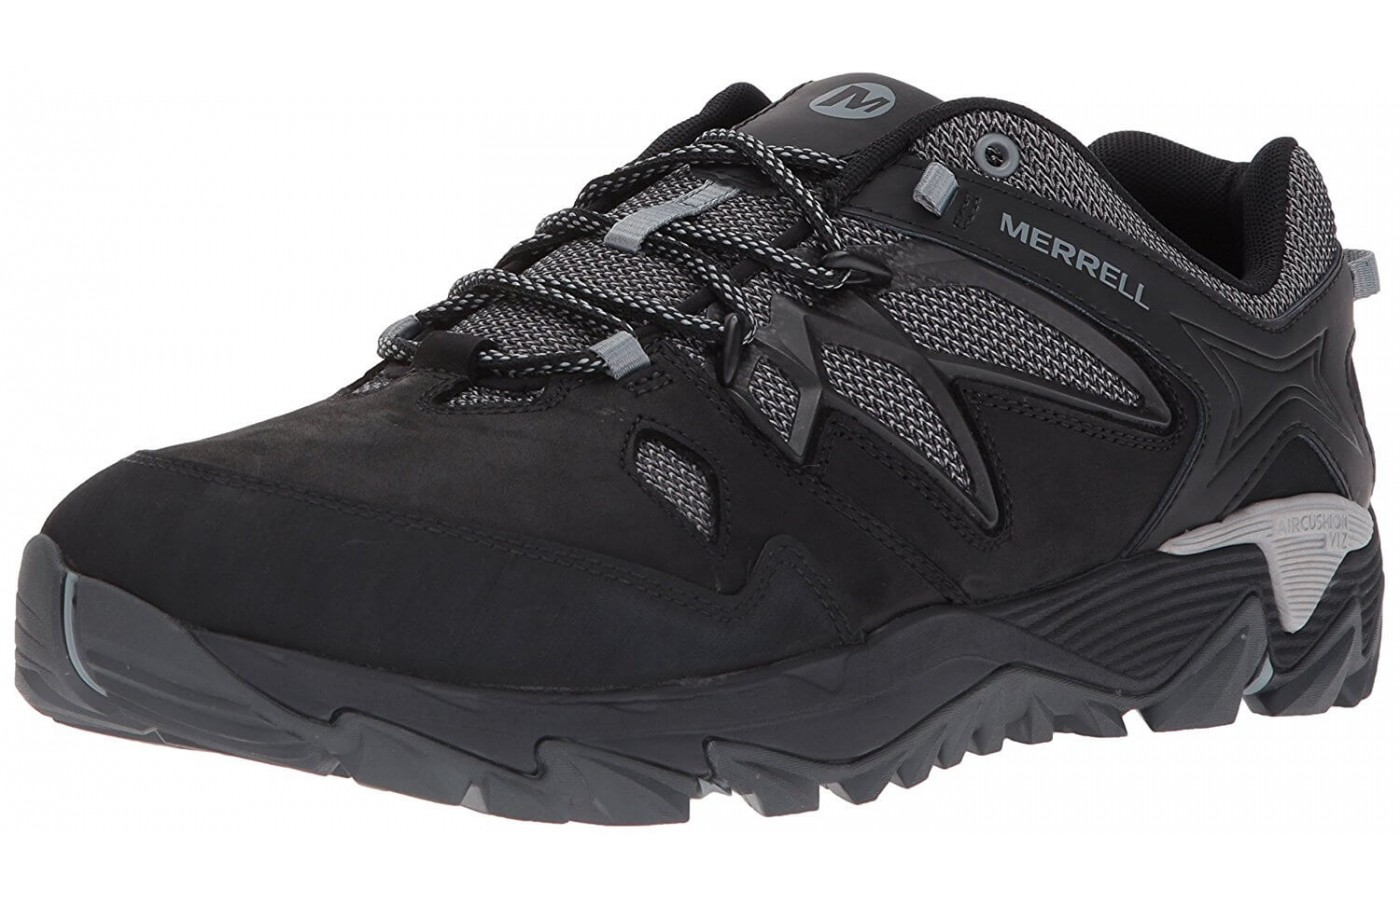 An angled view of the Merrell All Out Blaze 2.